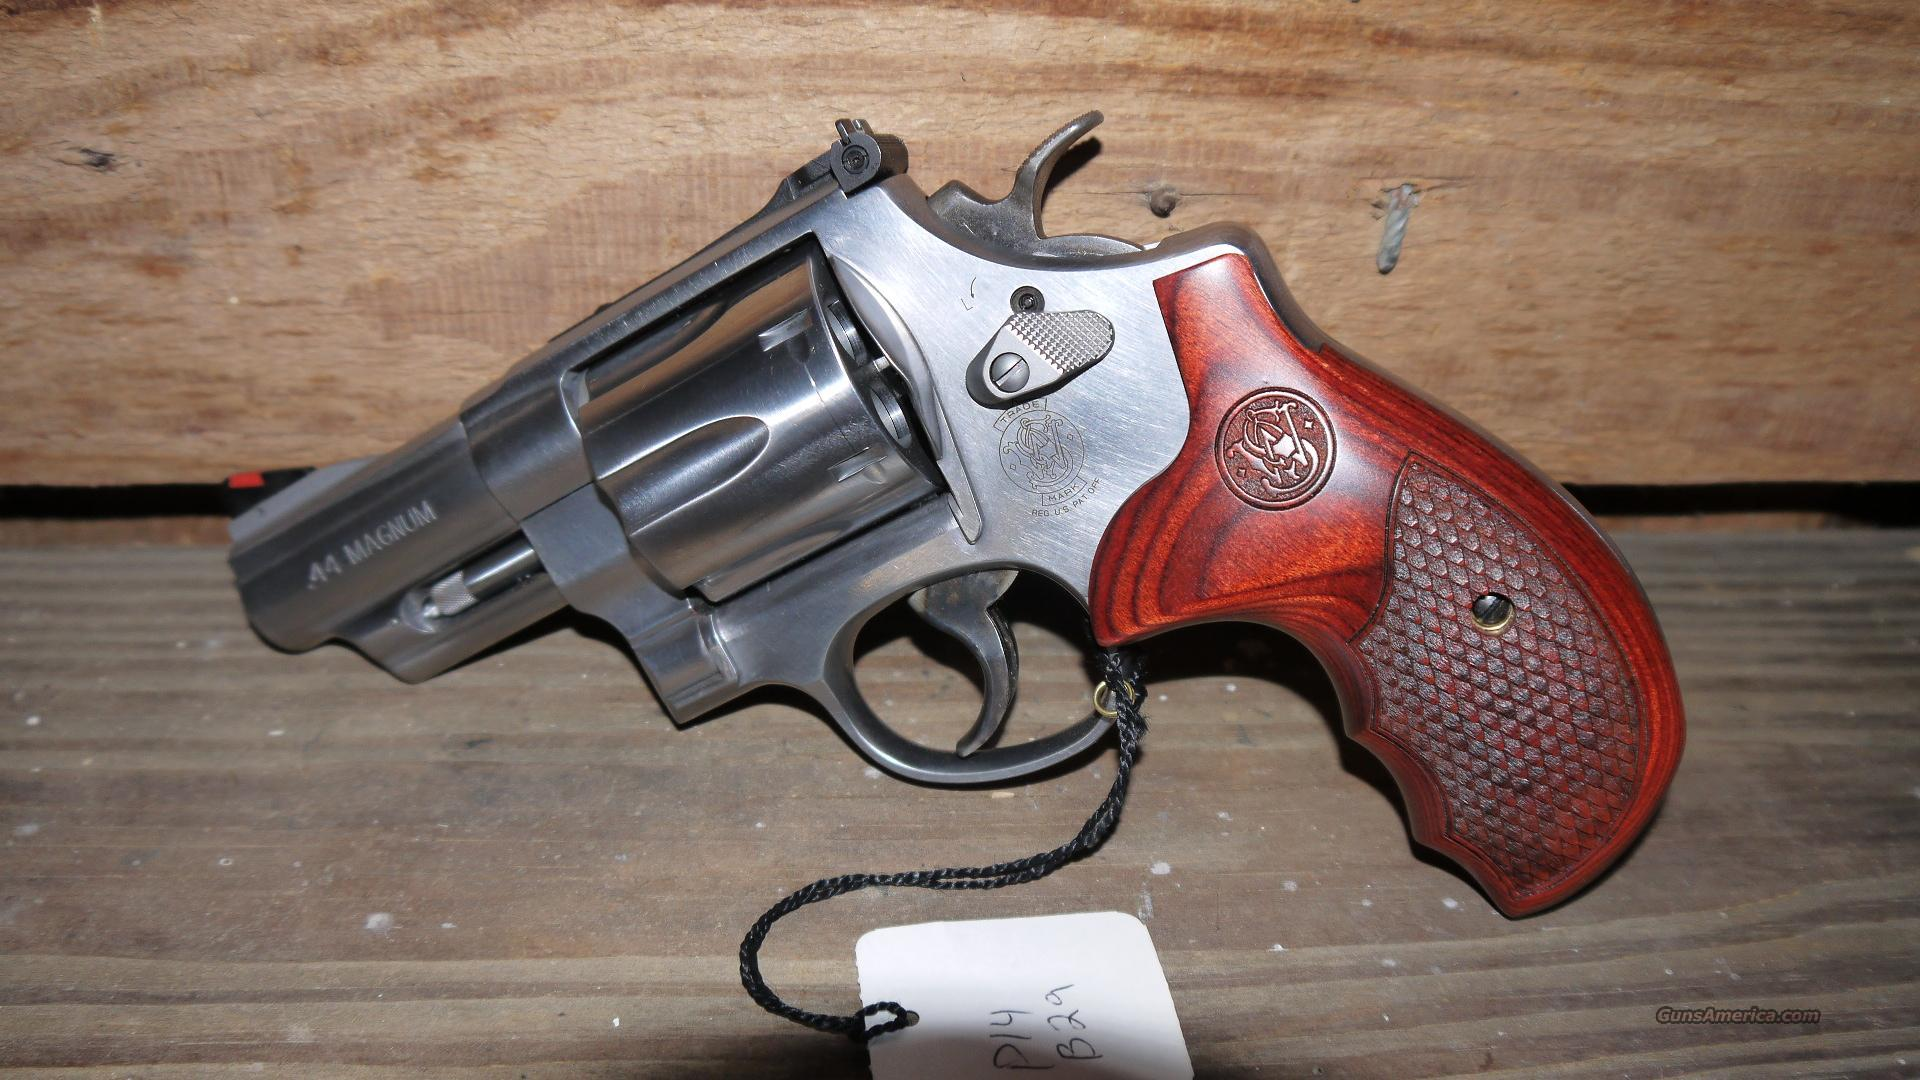 Smith & Wesson 150715 .44 Mag Revolver TALO  Guns > Pistols > Smith & Wesson Revolvers > Model 629